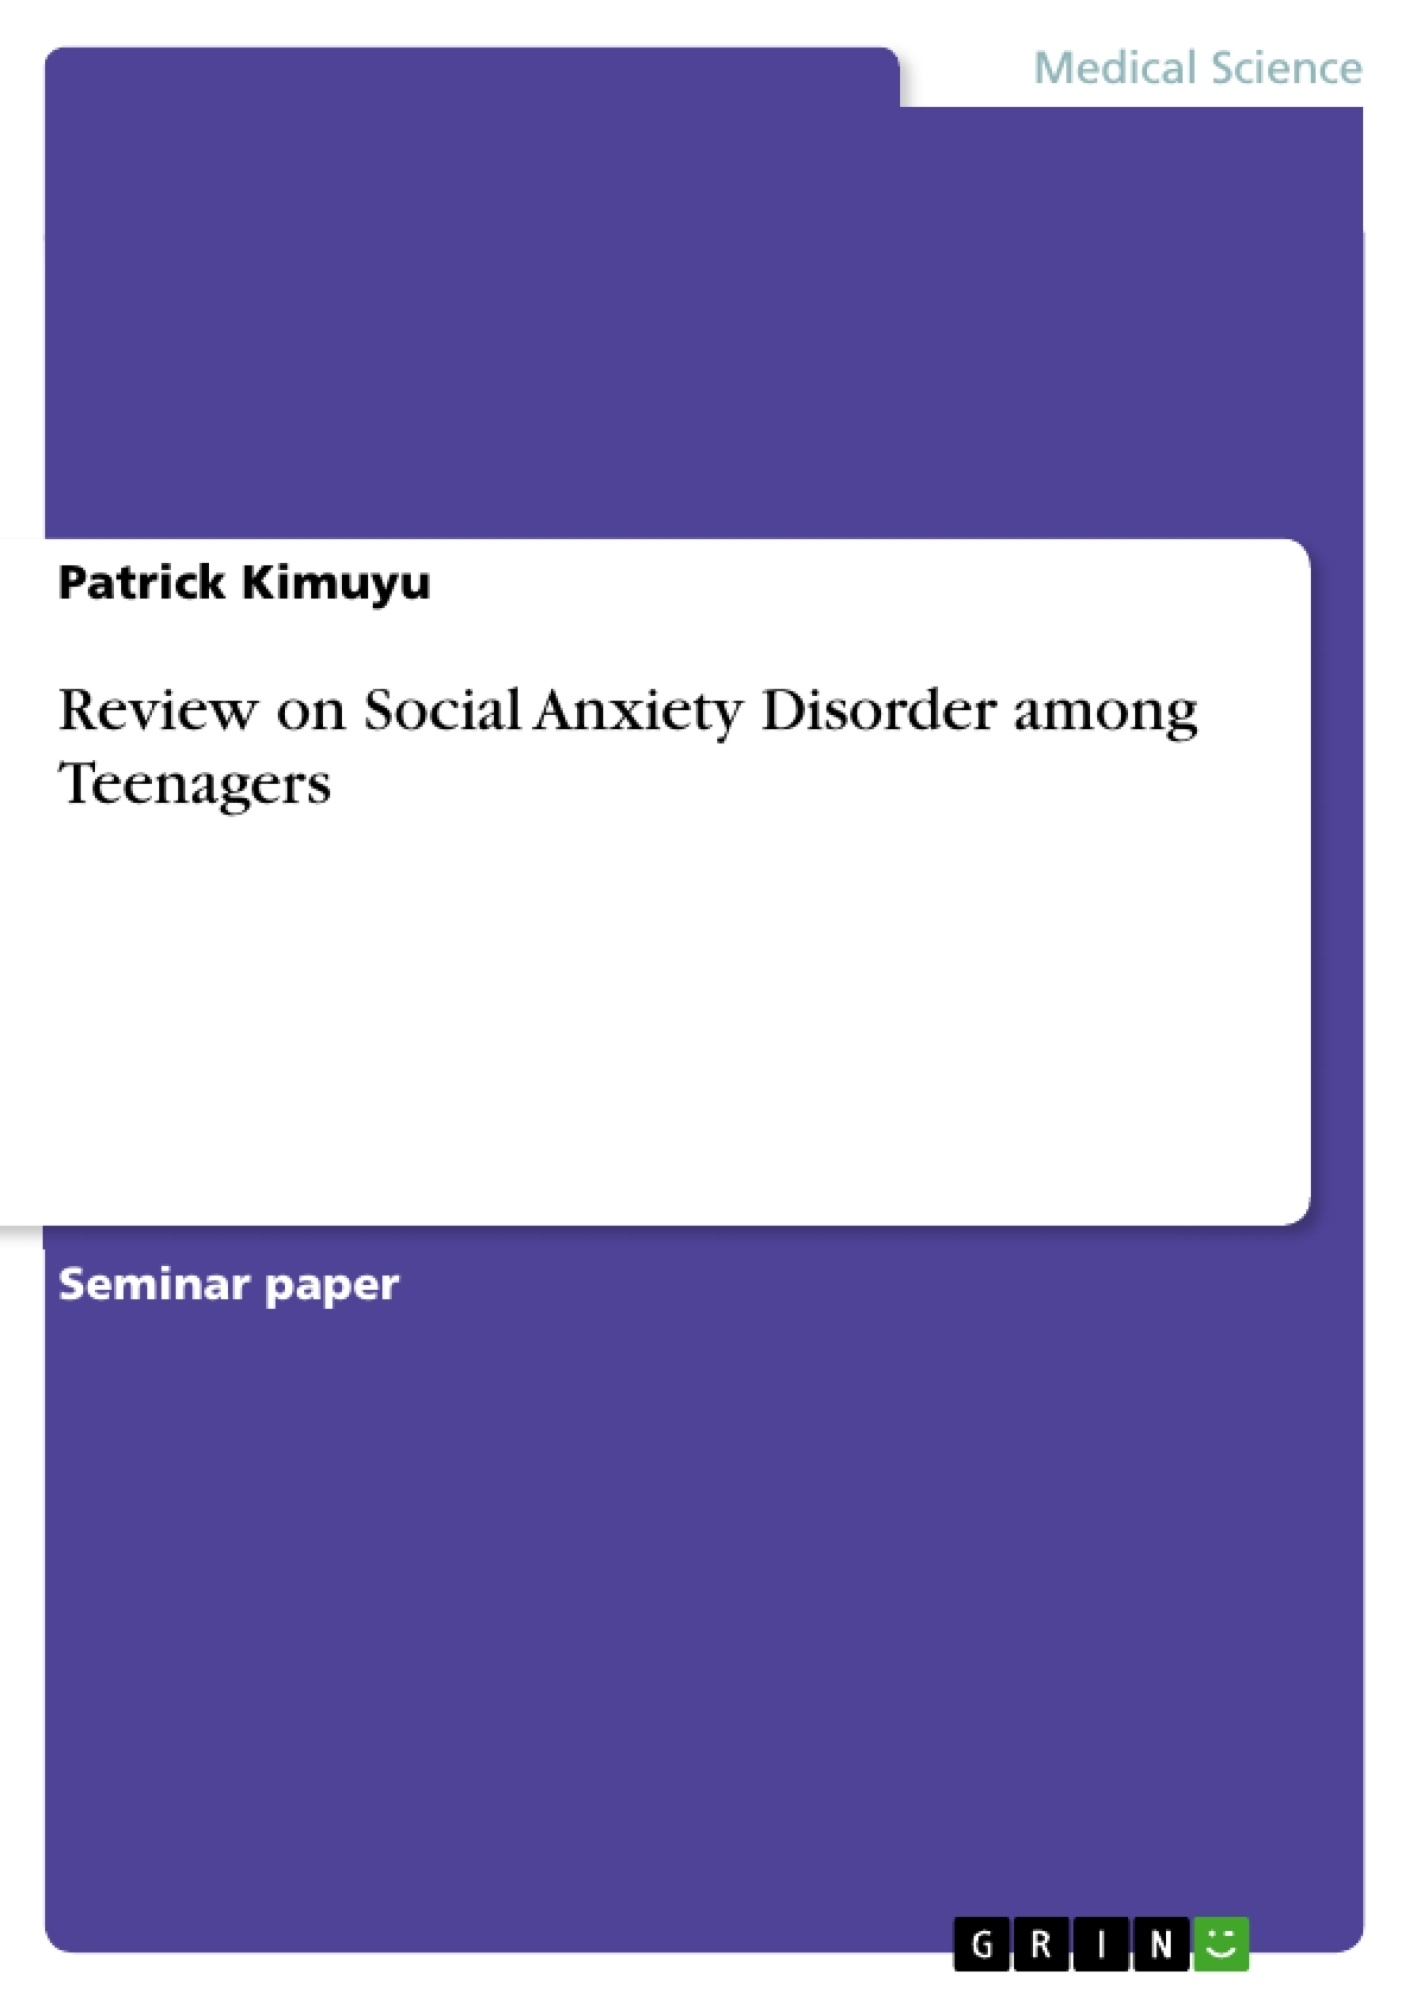 Title: Review on Social Anxiety Disorder among Teenagers